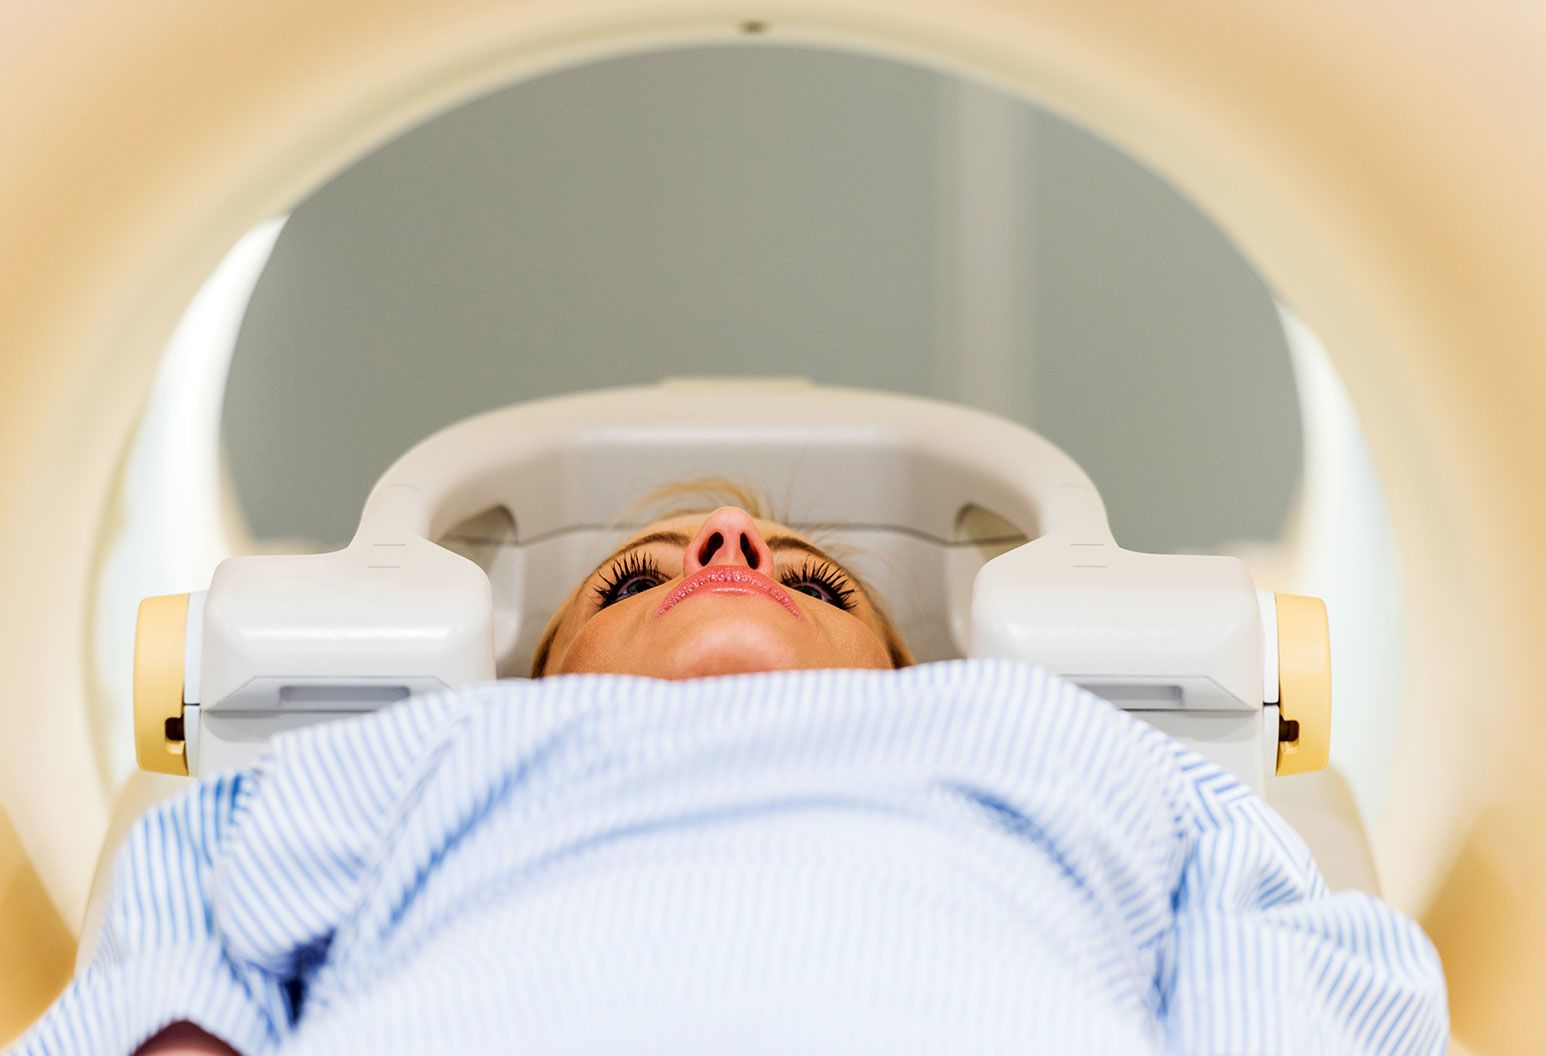 A woman in blue and white patient scrubs lies down on a platform inside a cylindrical white machine.